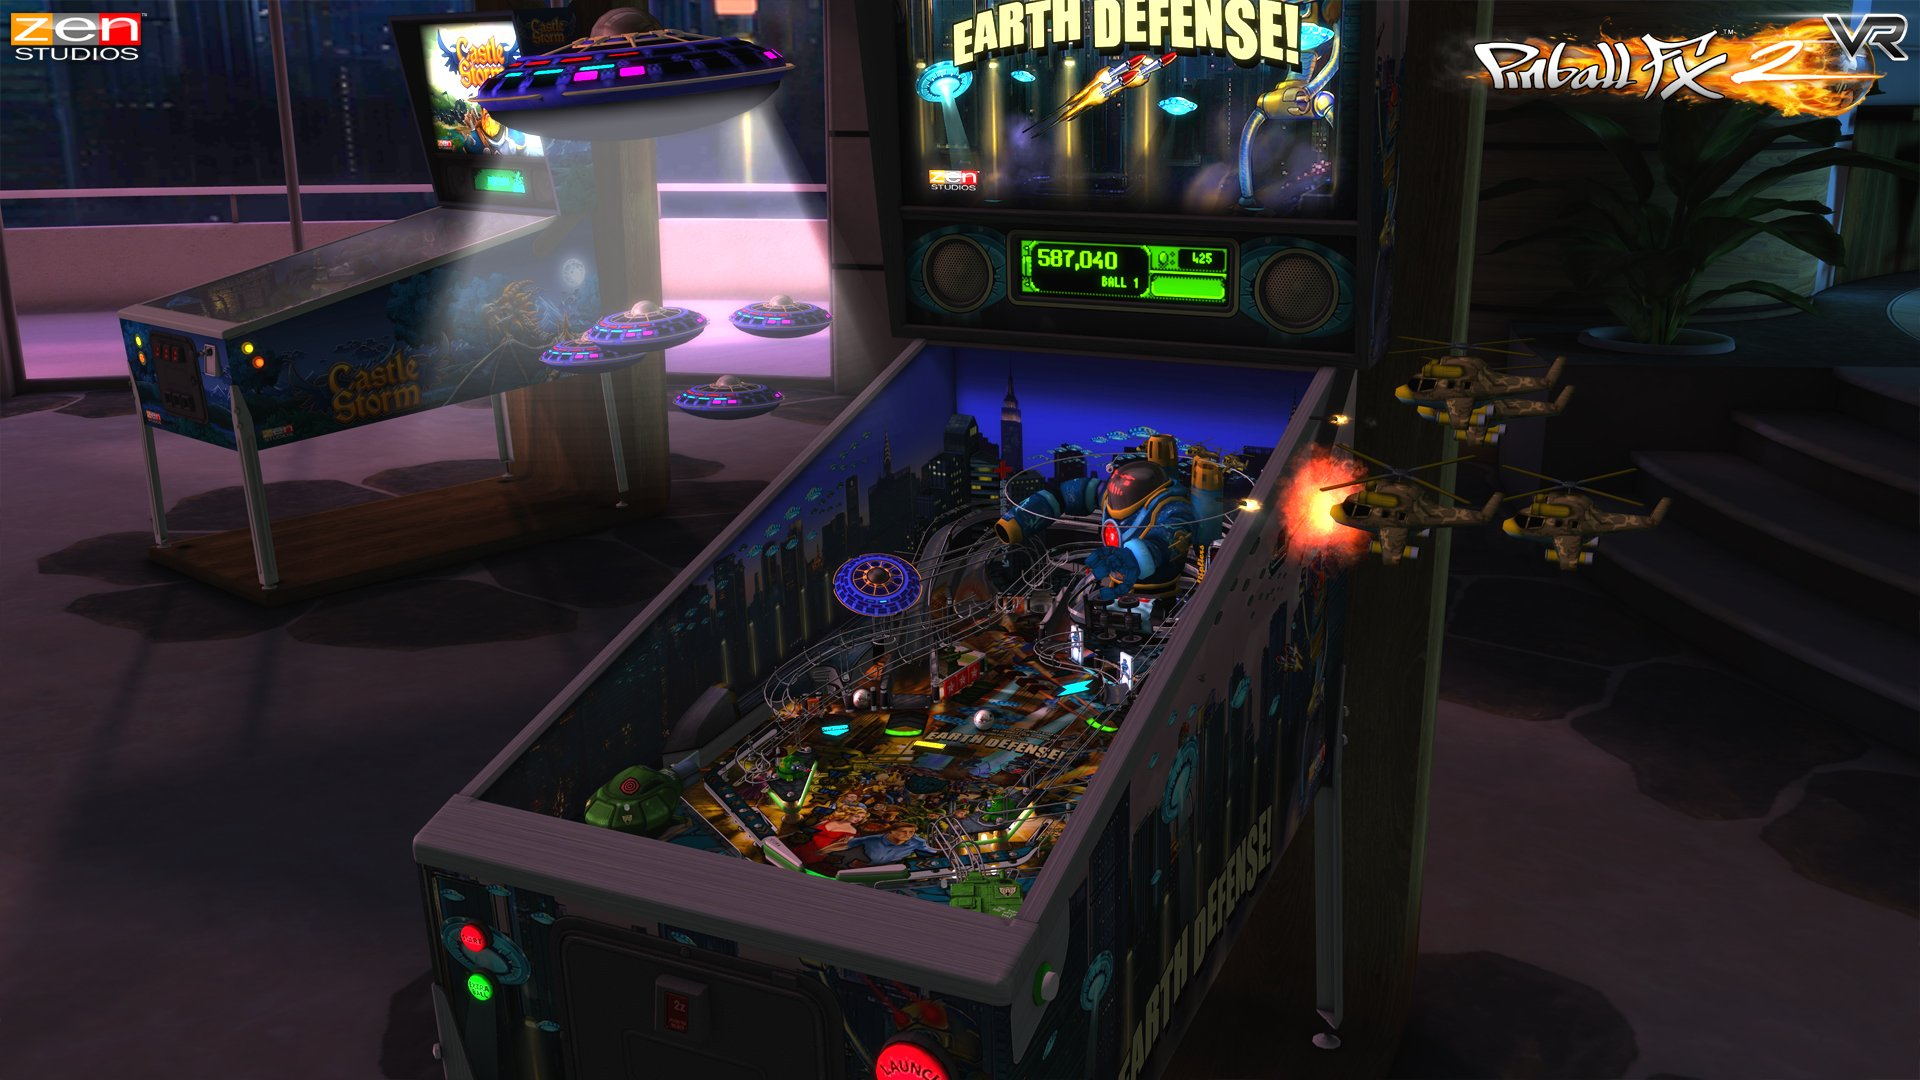 Pinball_FX2_VR_gear_vr_screenshot_EarthDefense